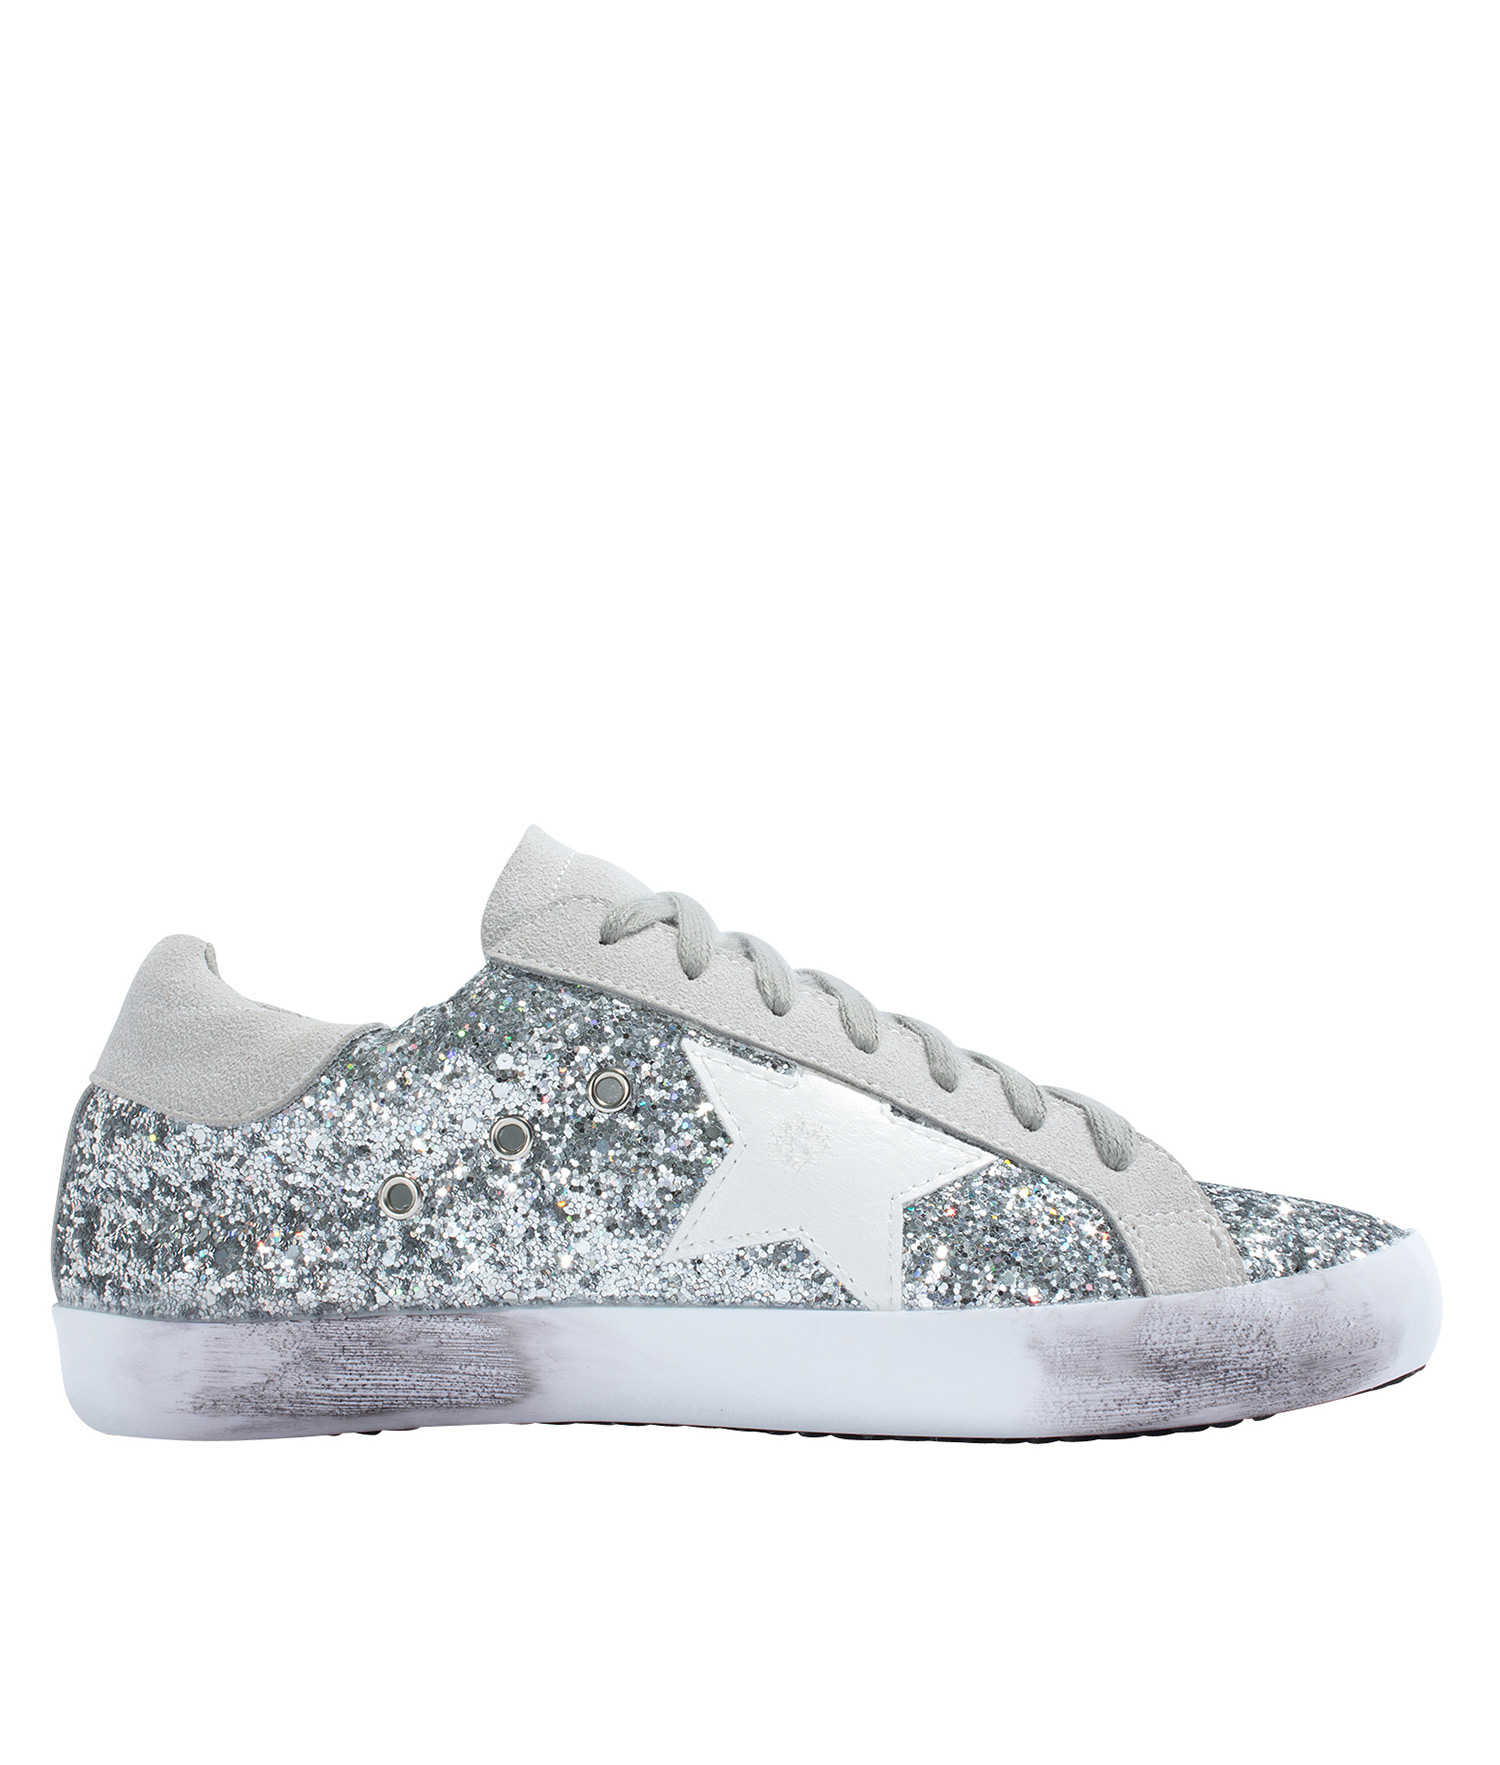 Low Top Silver Glitter Sneakers Annakastleshoes Com